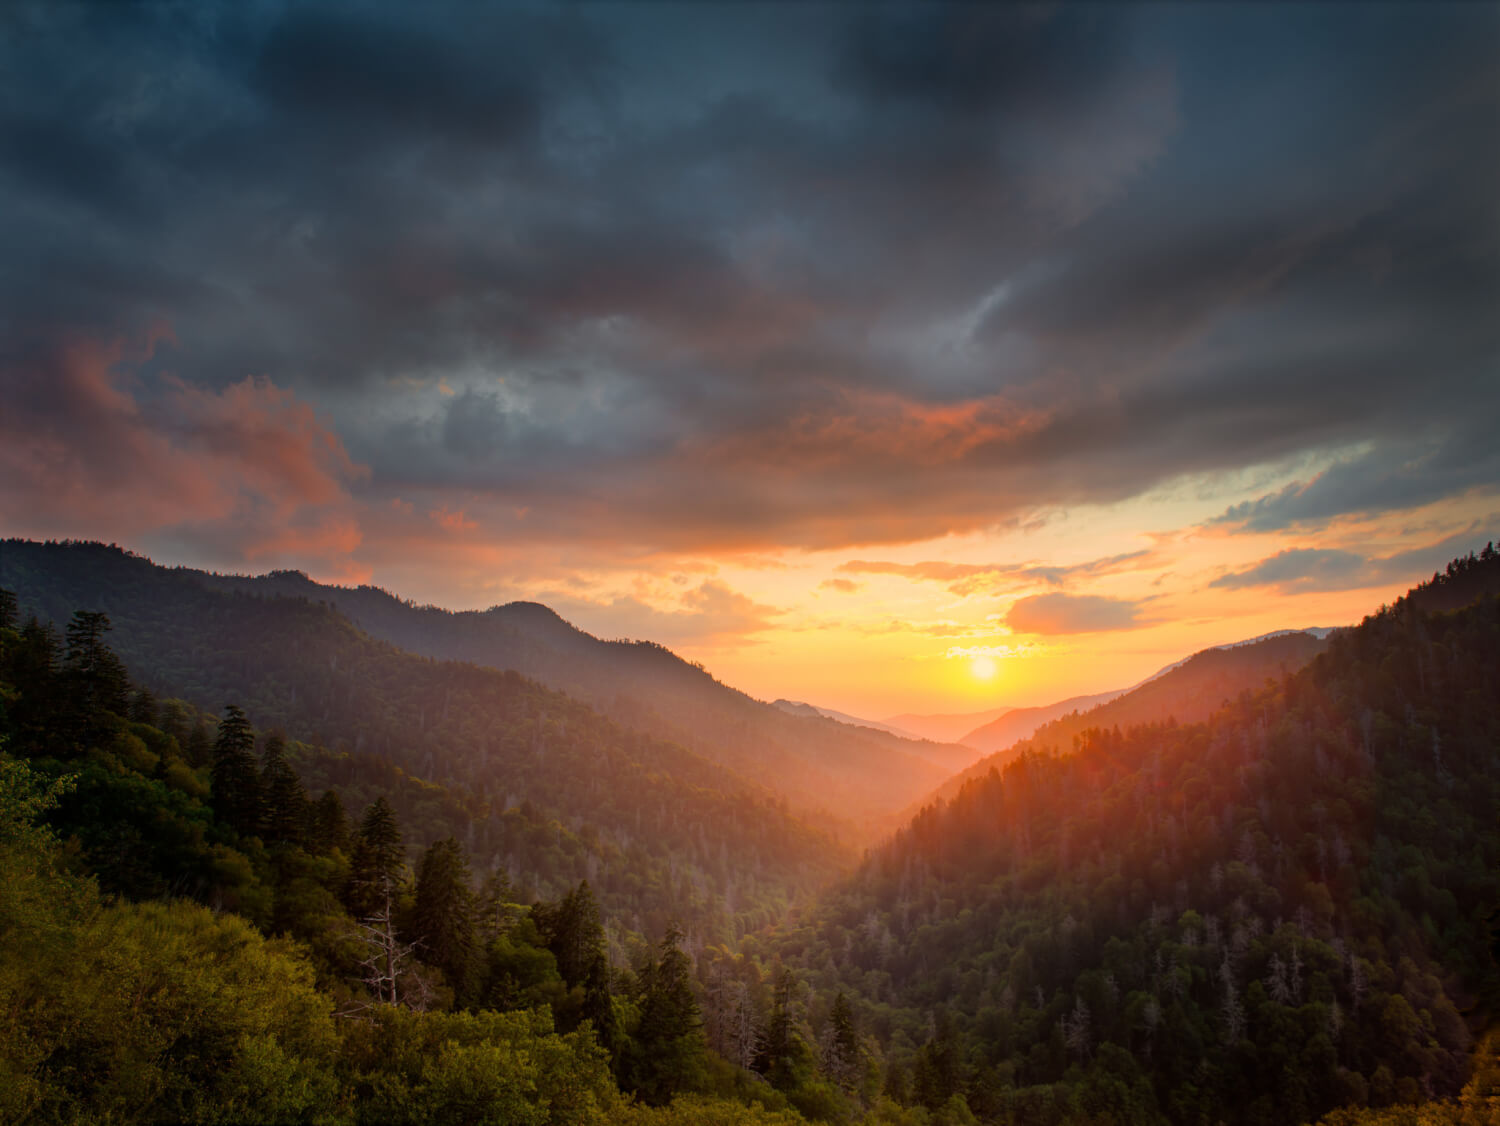 Smokies Sunrise - Alistair Nicol